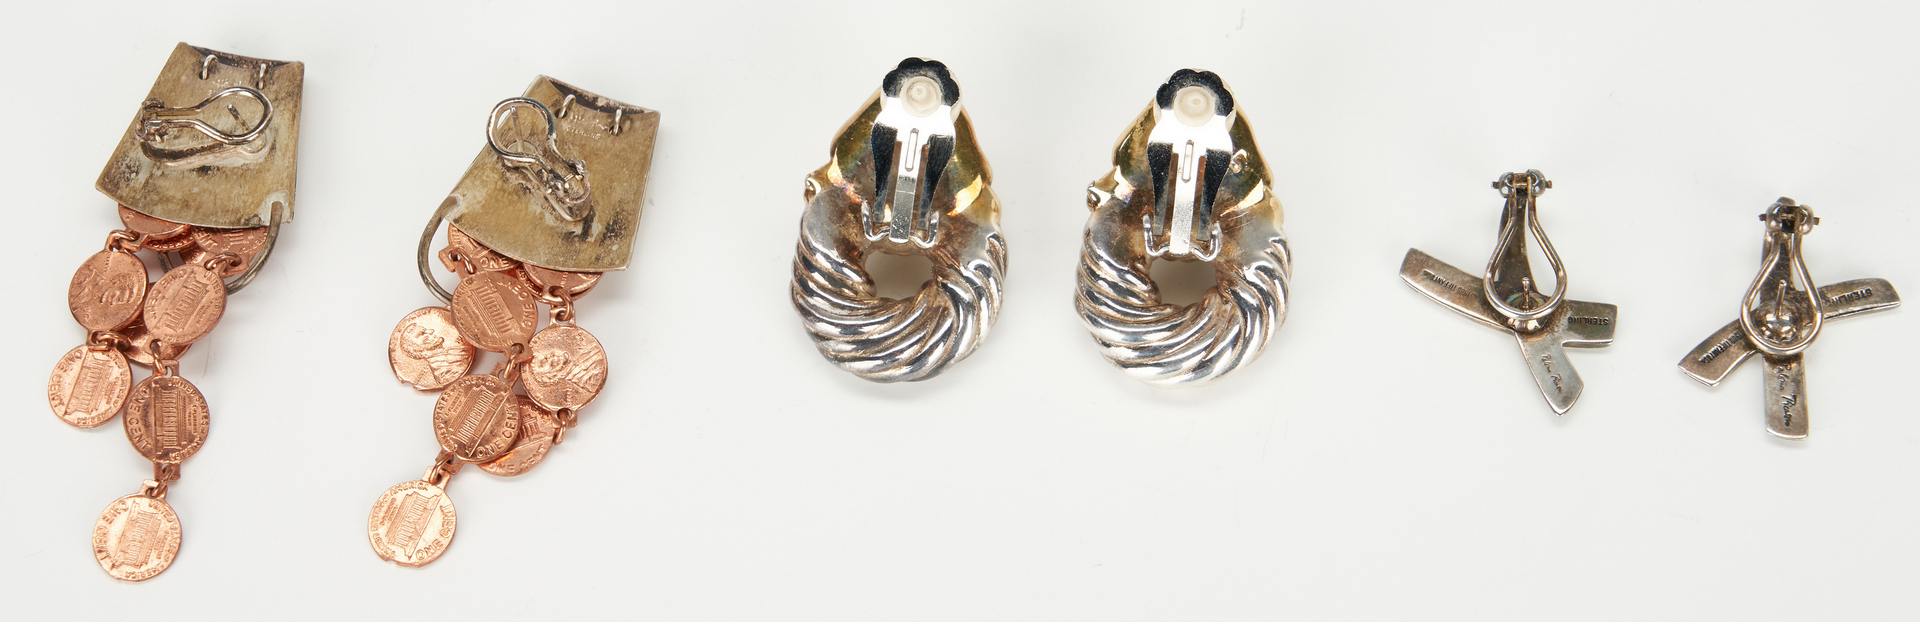 Lot 1042: Designer Sterling jewelry incl. Tiffany, 12 items